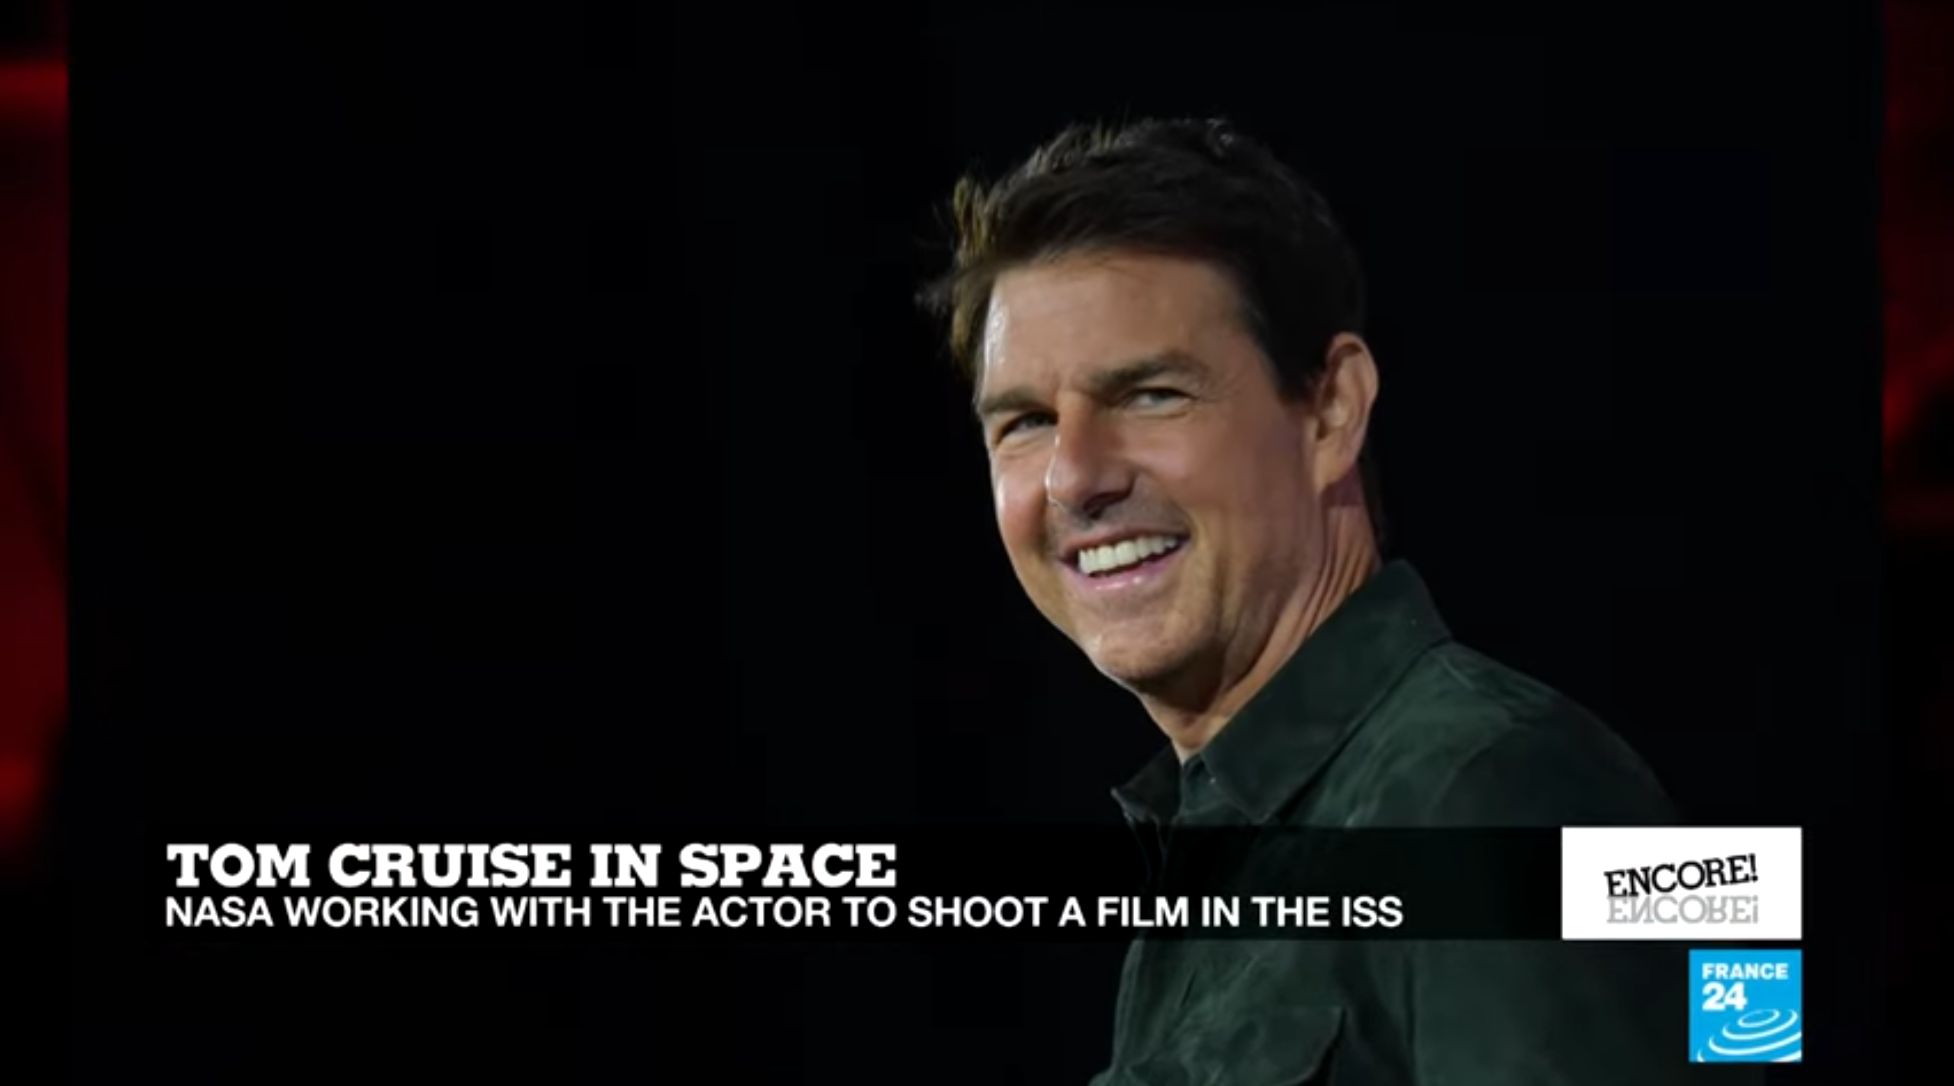 Tom Cruise plans to become the first actor to shot a film at the ISS.